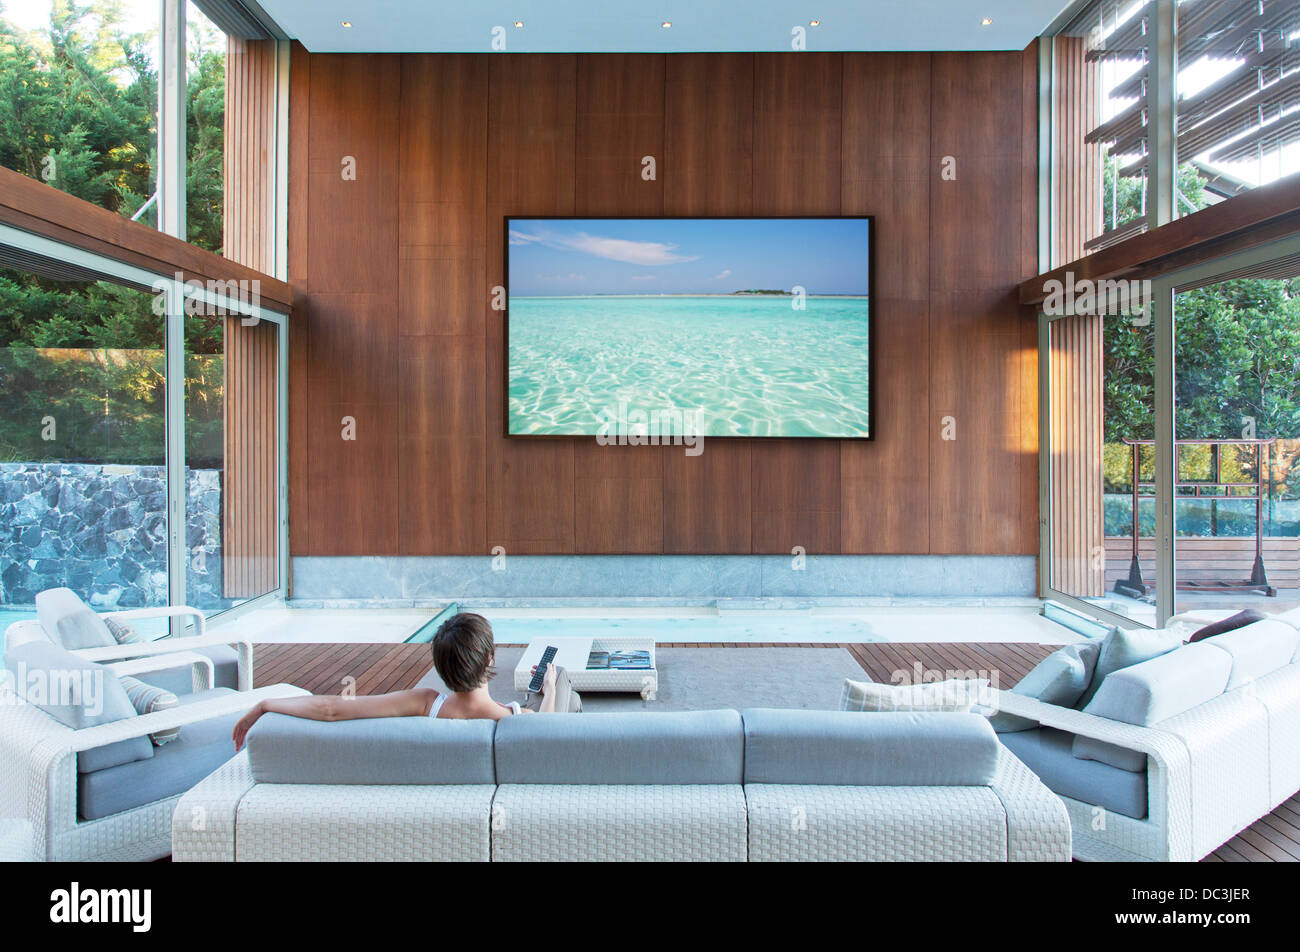 Attrayant Woman Watching Large Flat Screen TV In Modern Living Room